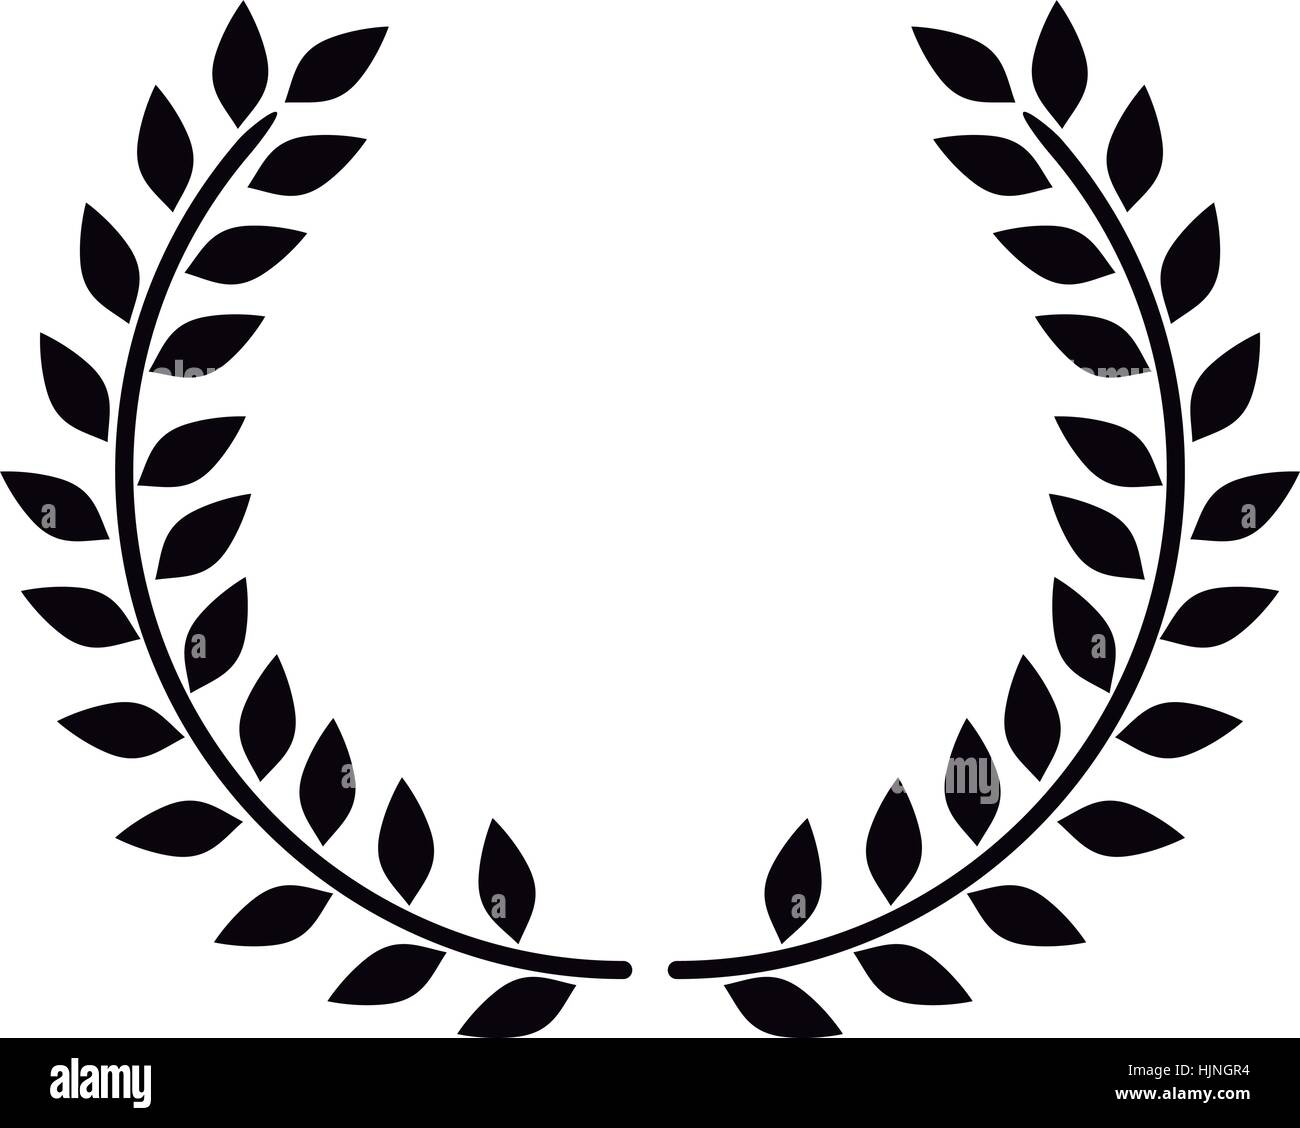 wreath leaves ornament icon vector illustration graphic stock vector image art alamy https www alamy com stock photo wreath leaves ornament icon vector illustration graphic 132010568 html